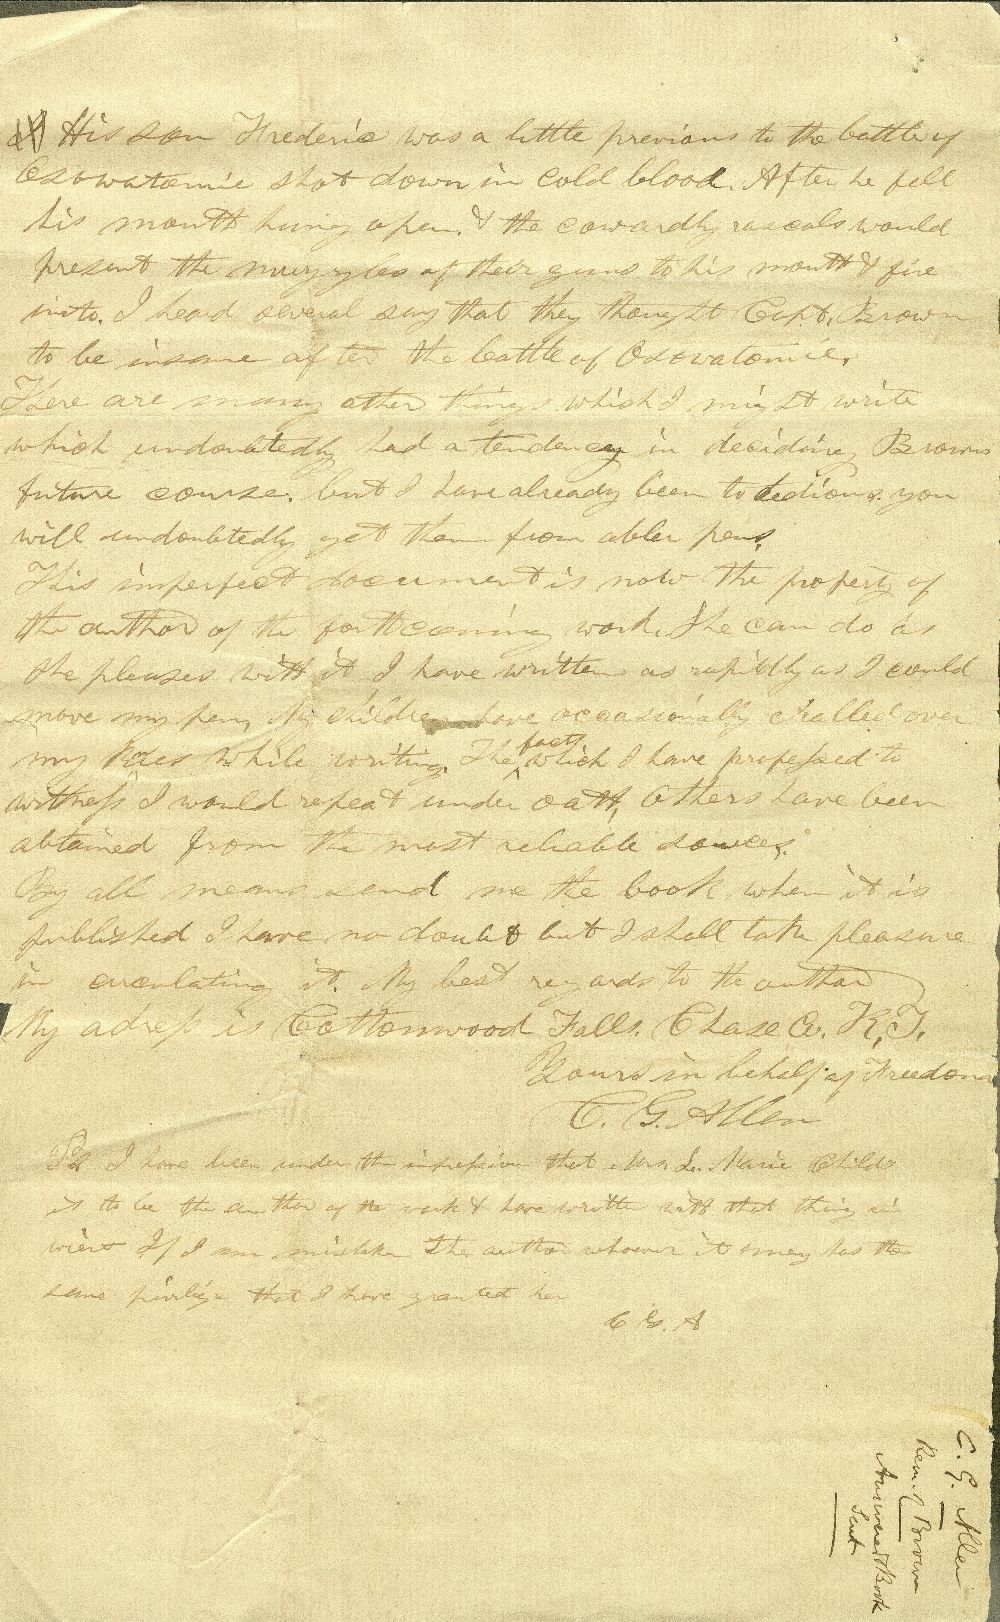 C. G. Allen's response to Redpath and Hinton's call for information about John Brown - 14